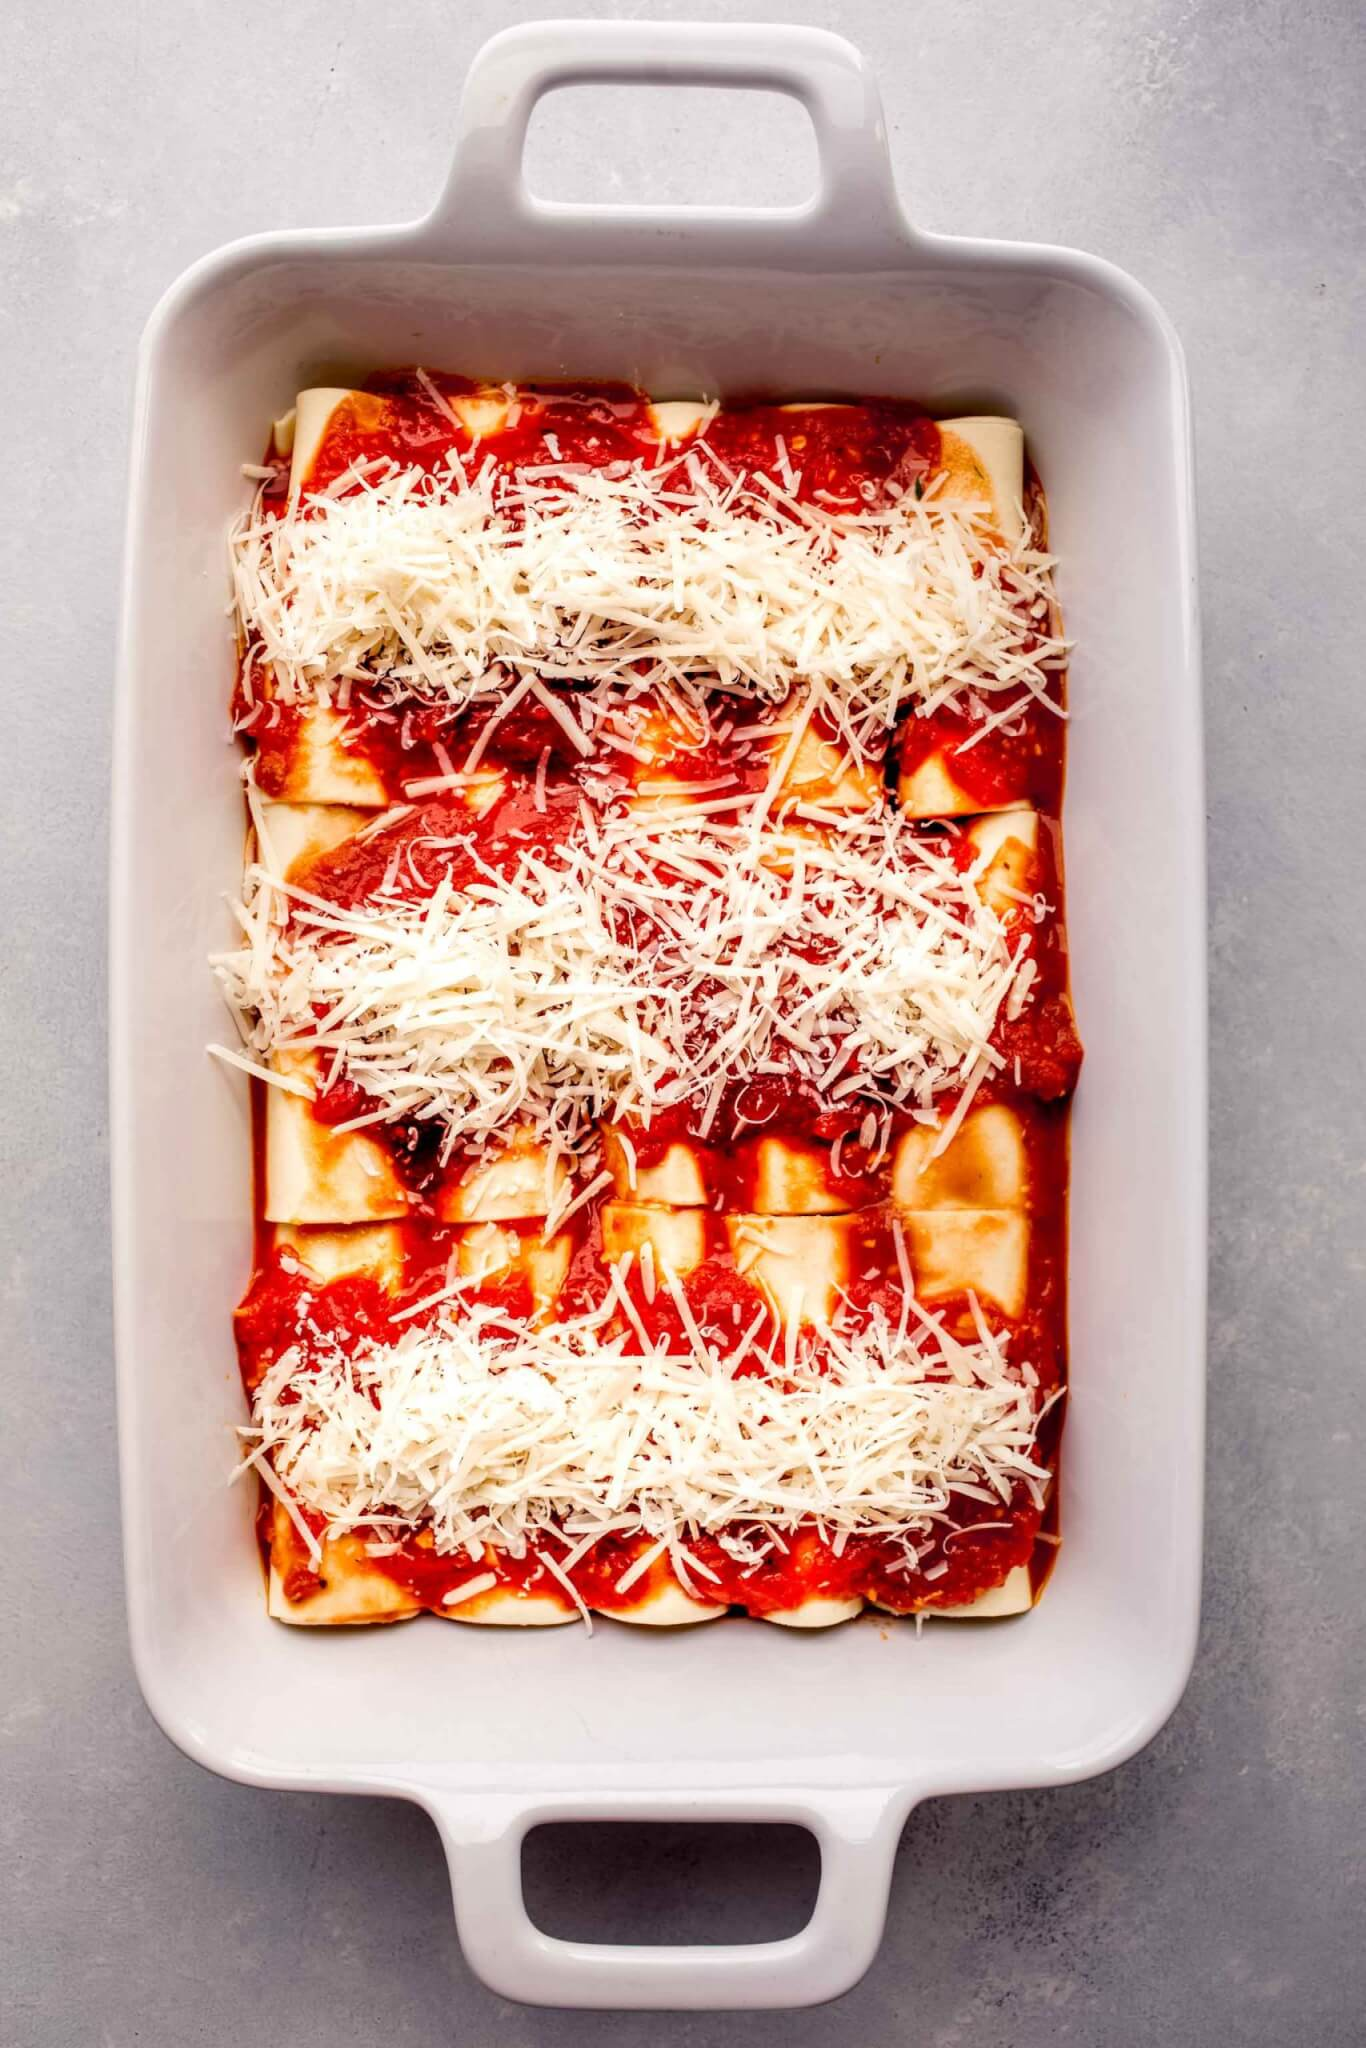 Unbaked manicotti arranged in baking dish.